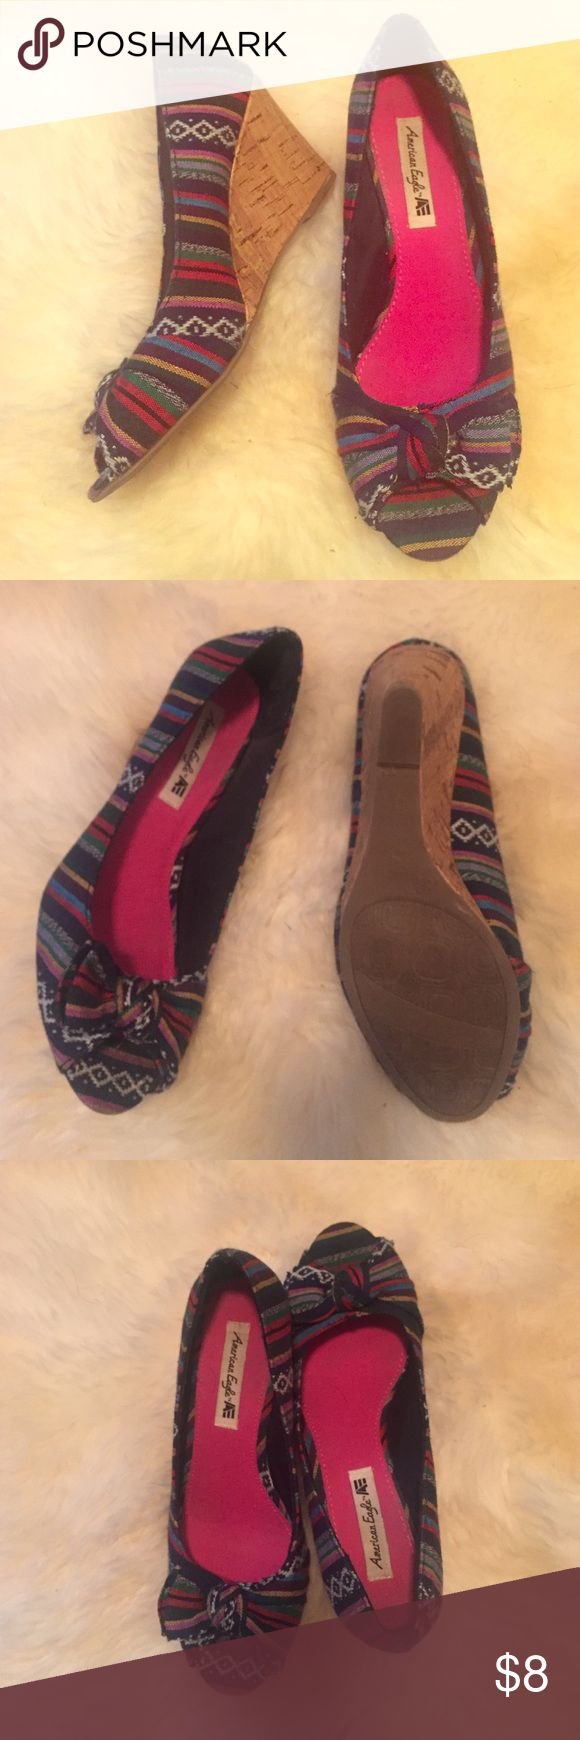 WORN ONCE Multi Coloured Tribal Open Toe Wedges Multi Coloured Tribal Open Toe Wedges American Eagle by Payless Shoes Wedges